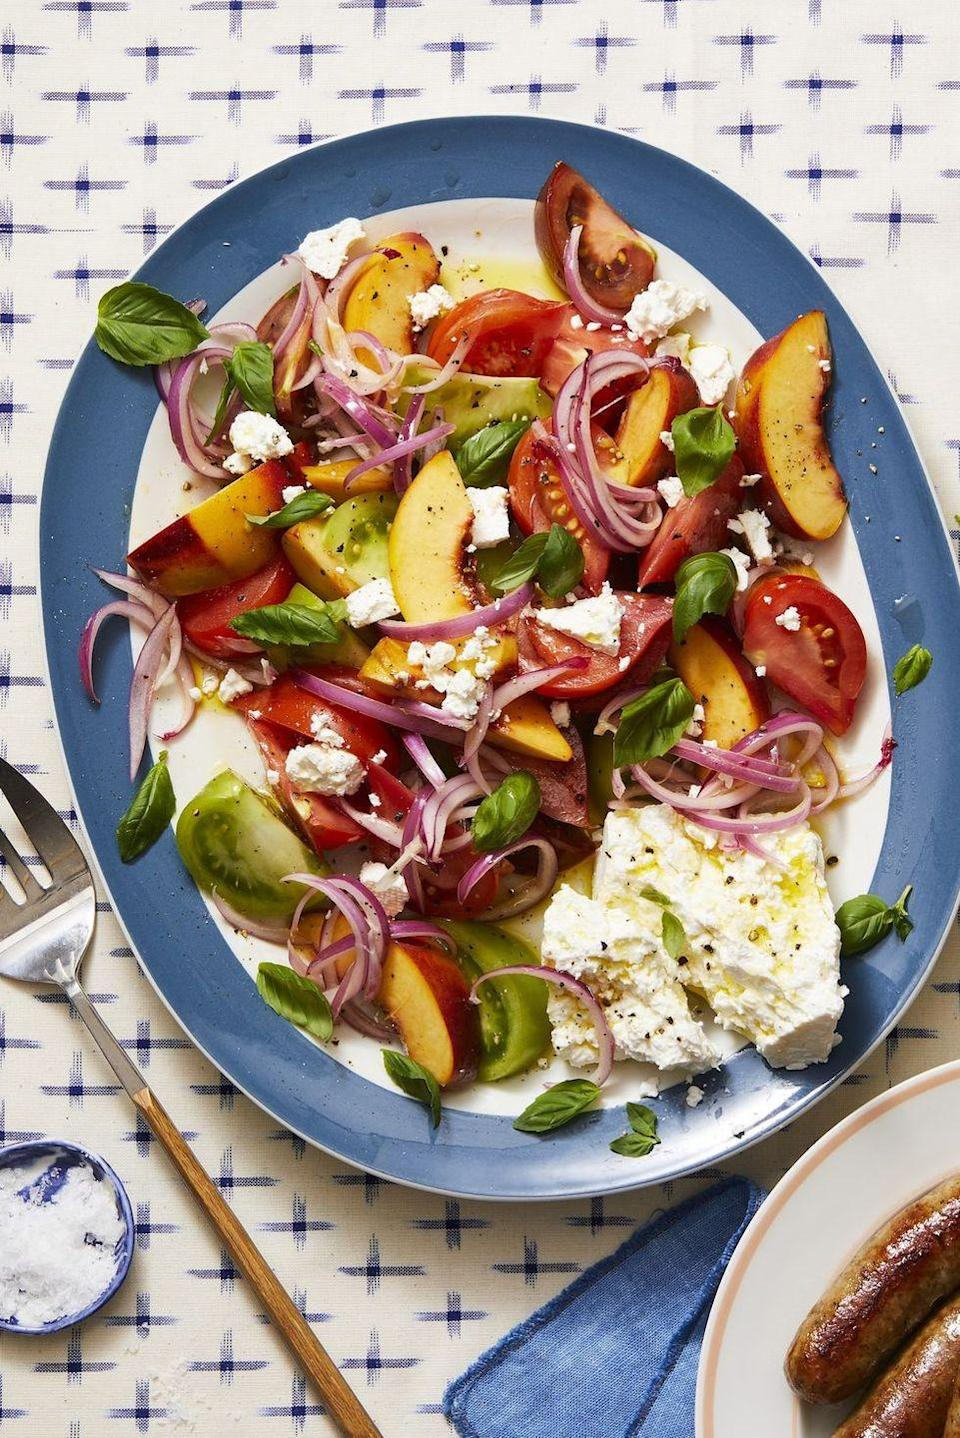 "<p>Pickled onions and feta bring out this sweet summer fruit's delightfully savory side. <a href=""https://www.goodhousekeeping.com/food-recipes/a28611633/tomato-peach-and-basil-salad-with-italian-sausage-recipe/"" rel=""nofollow noopener"" target=""_blank"" data-ylk=""slk:Try it with sausage"" class=""link rapid-noclick-resp"">Try it with sausage</a> for a spicy edge!</p><p><em><a href=""https://www.goodhousekeeping.com/food-recipes/a28136659/tomato-peach-and-basil-salad-recipe/"" rel=""nofollow noopener"" target=""_blank"" data-ylk=""slk:Get the recipe for Tomato, Peach, and Basil Salad »"" class=""link rapid-noclick-resp"">Get the recipe for Tomato, Peach, and Basil Salad »</a></em></p>"